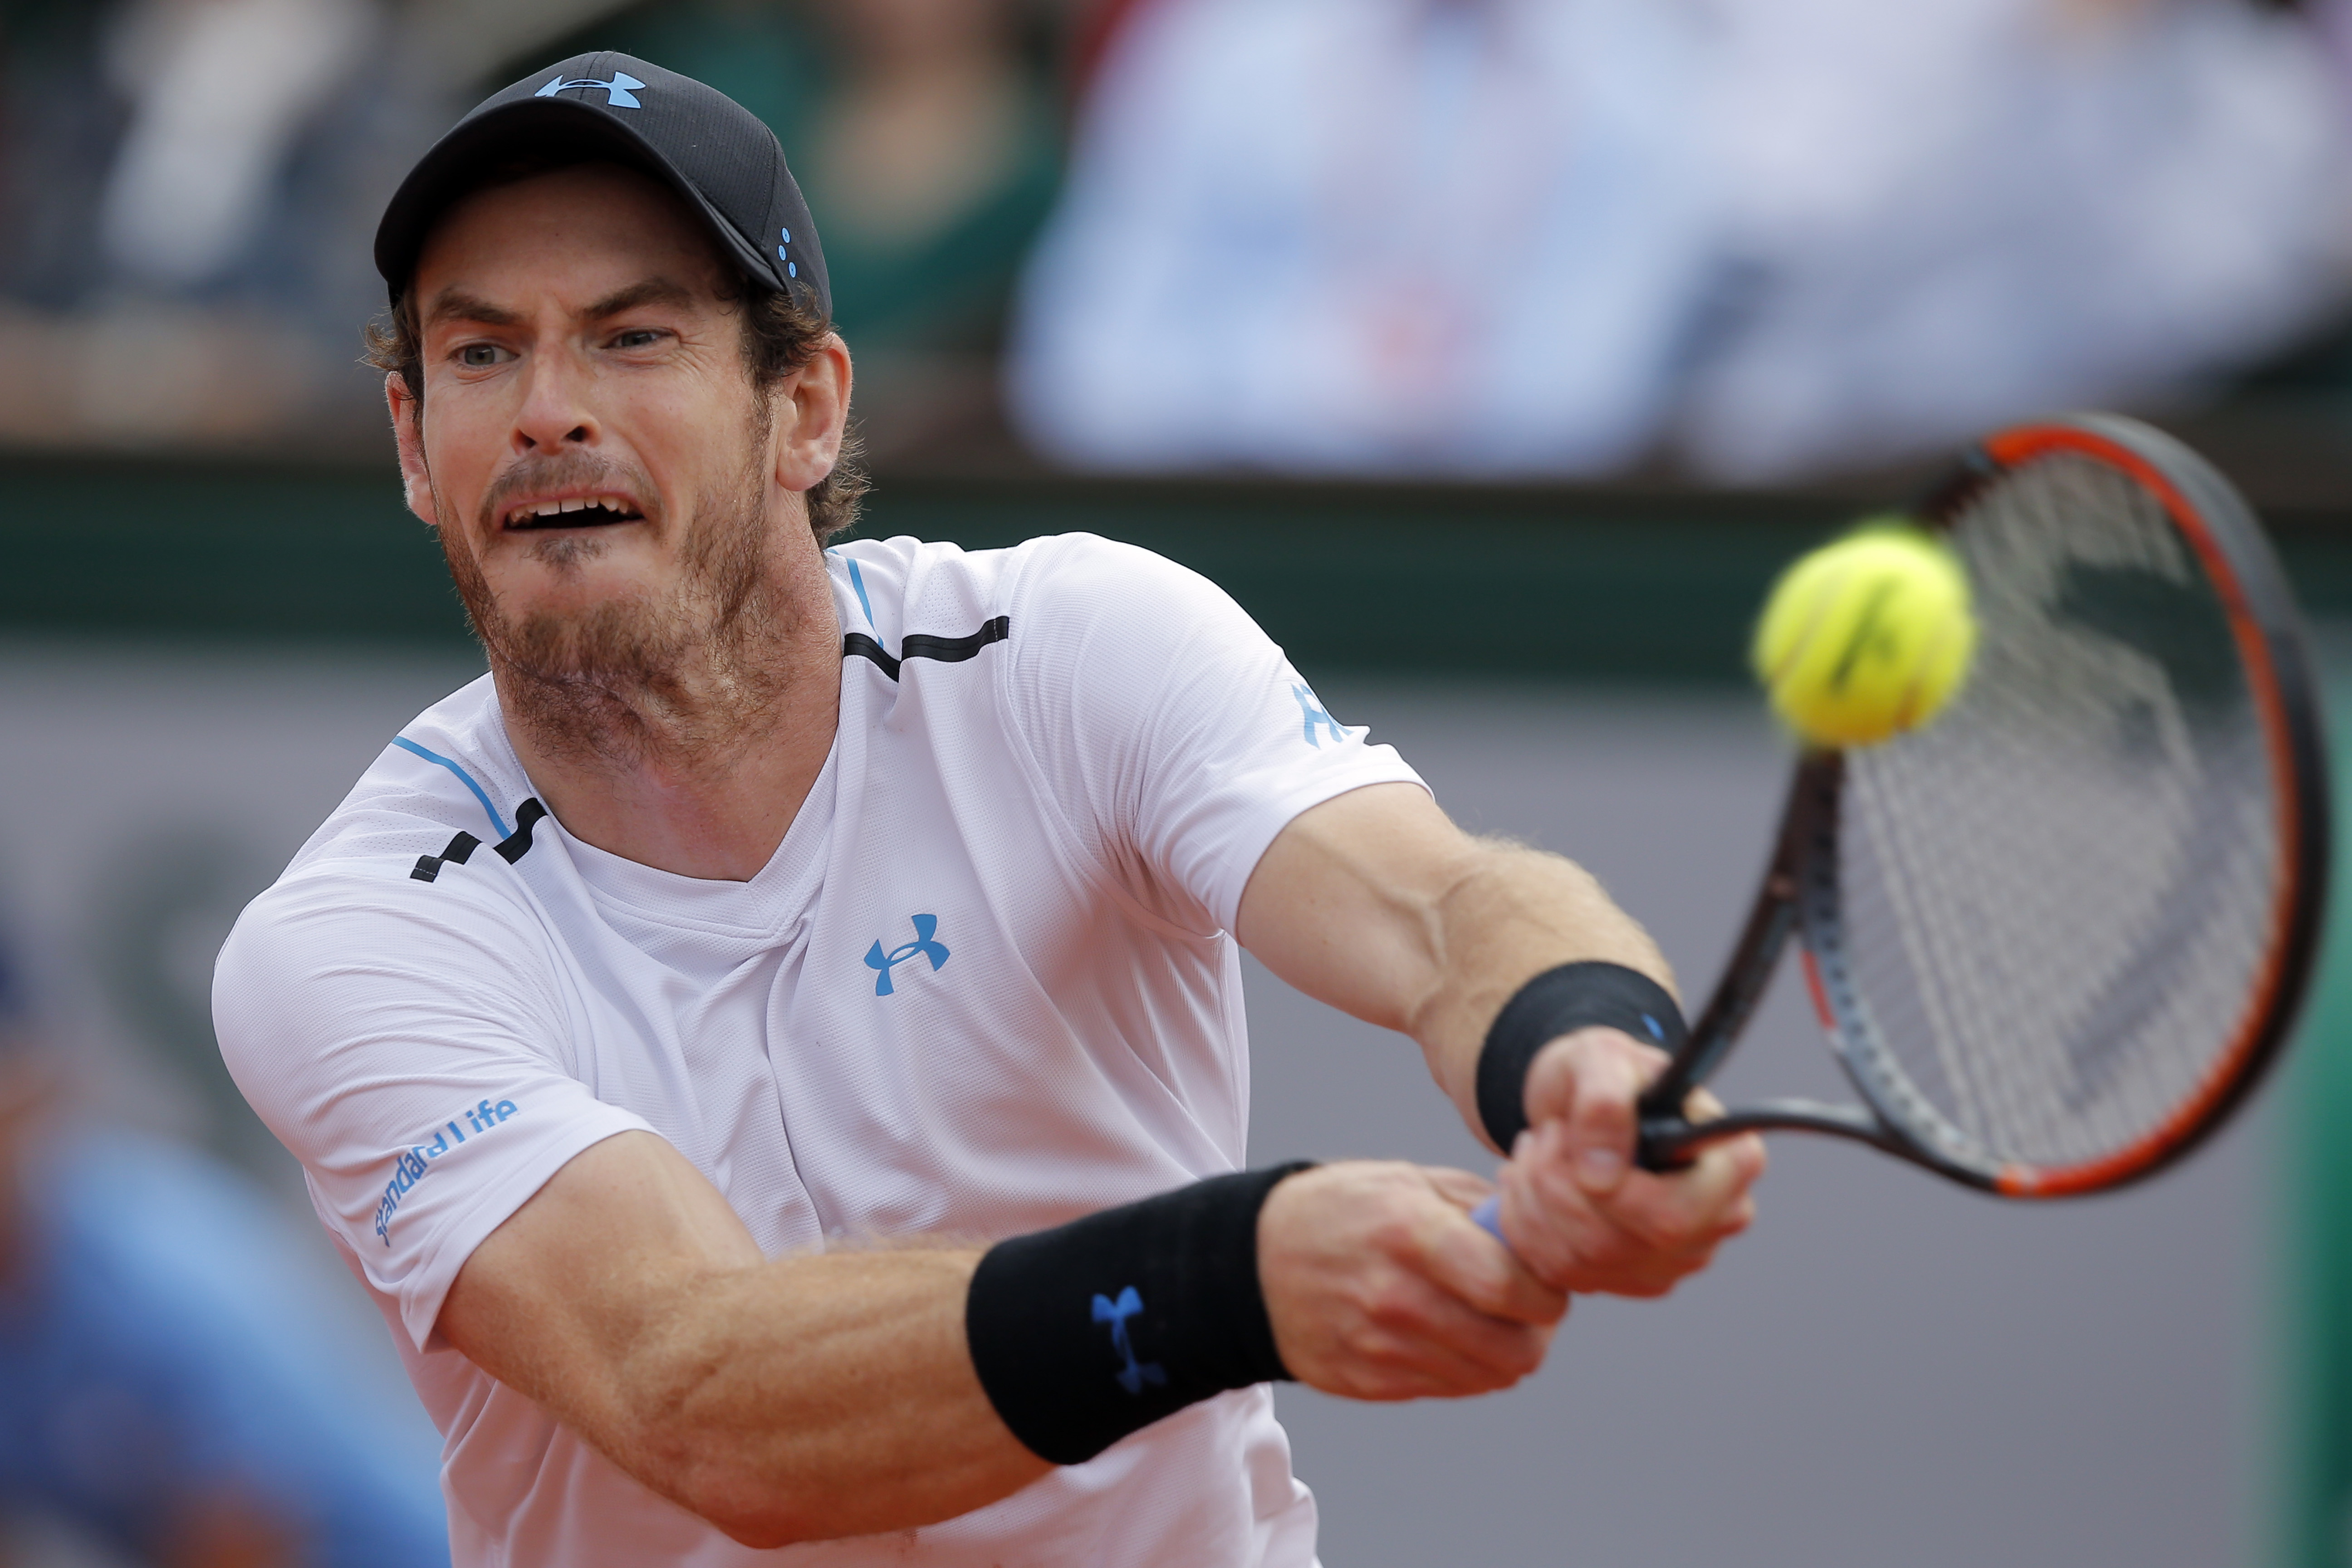 FILE - In this file photo dated Friday, June 9, 2017, Britain's Andy Murray in action against Switzerland's Stan Wawrinka during their semifinal match of the French Open tennis tournament at the Roland Garros stadium, in Paris.  Britain's top ranked Andy